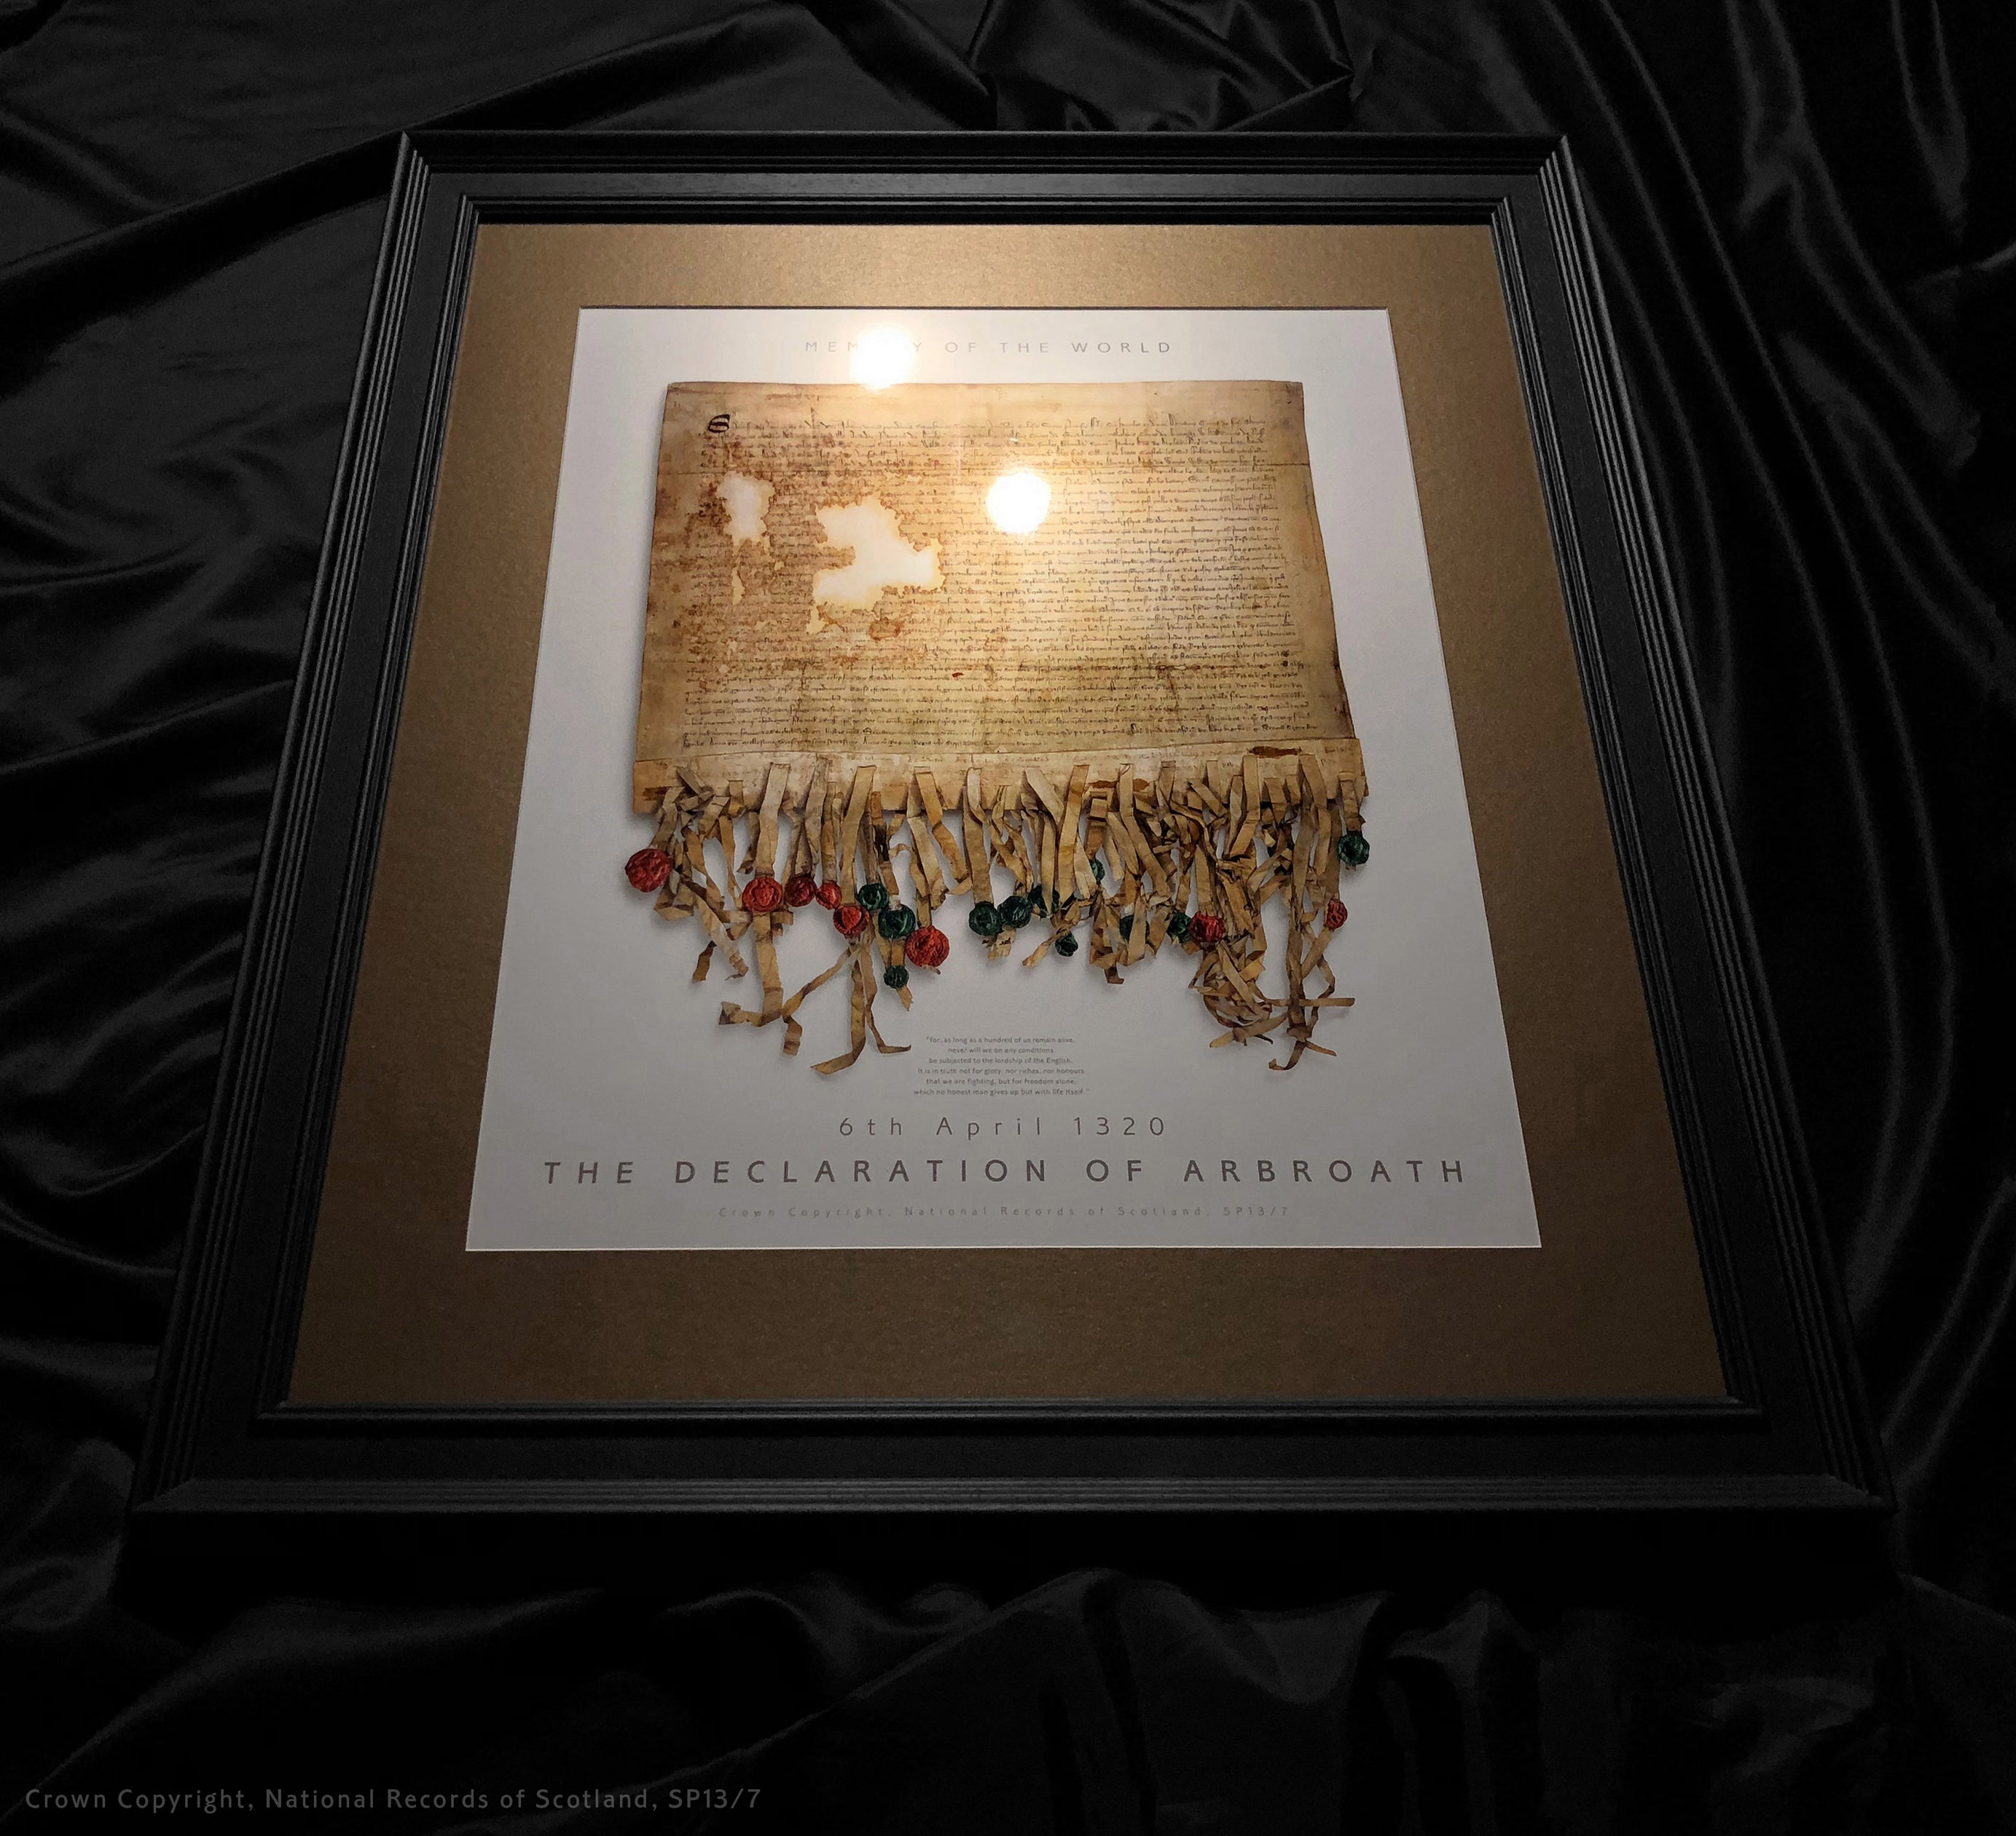 DECLARATION OF ARBROATH - GOLD metallic print editions - Produced on the latest generation C-Type Chromira Light-jet printer - only 700 copies - Pearl edition bronze mount